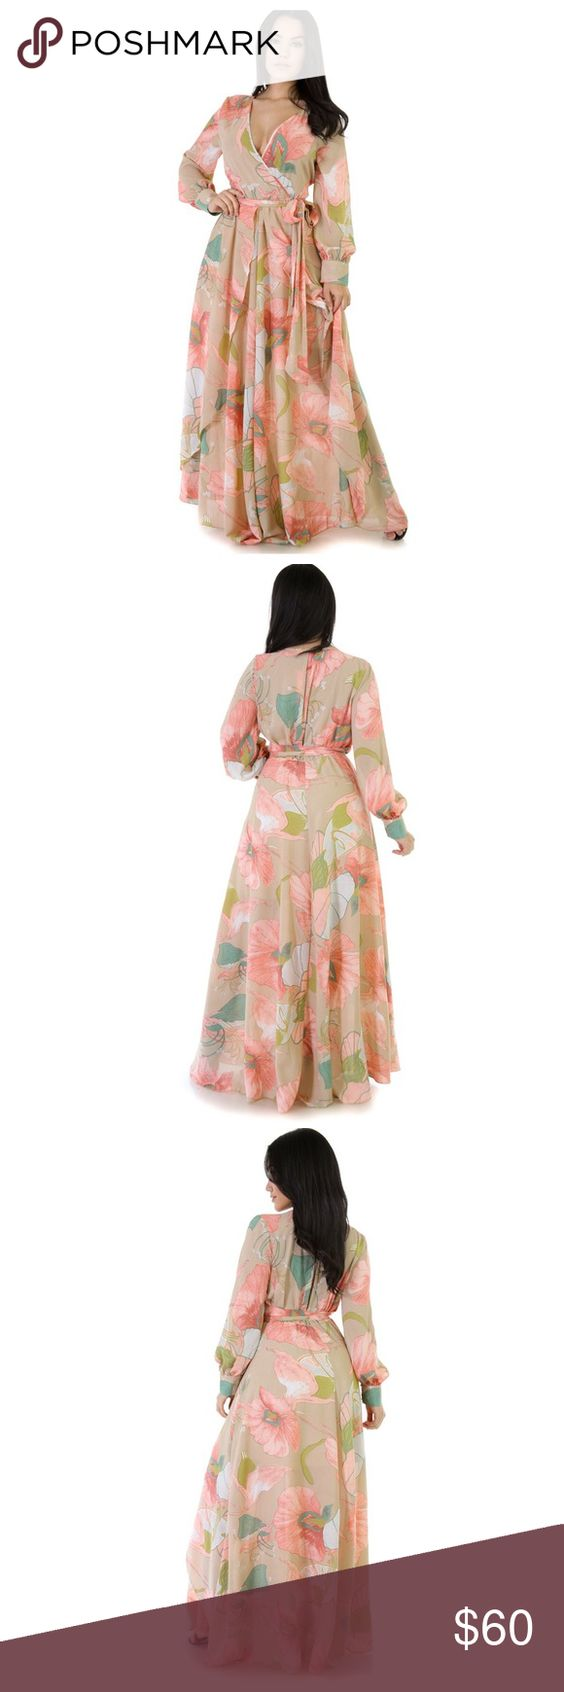 Peach nude floral maxi dress Fits sizes 10-12. Sash can either be tied on the back or side. Brand new with tags.             ***Not from Missguided*** Missguided Dresses Maxi